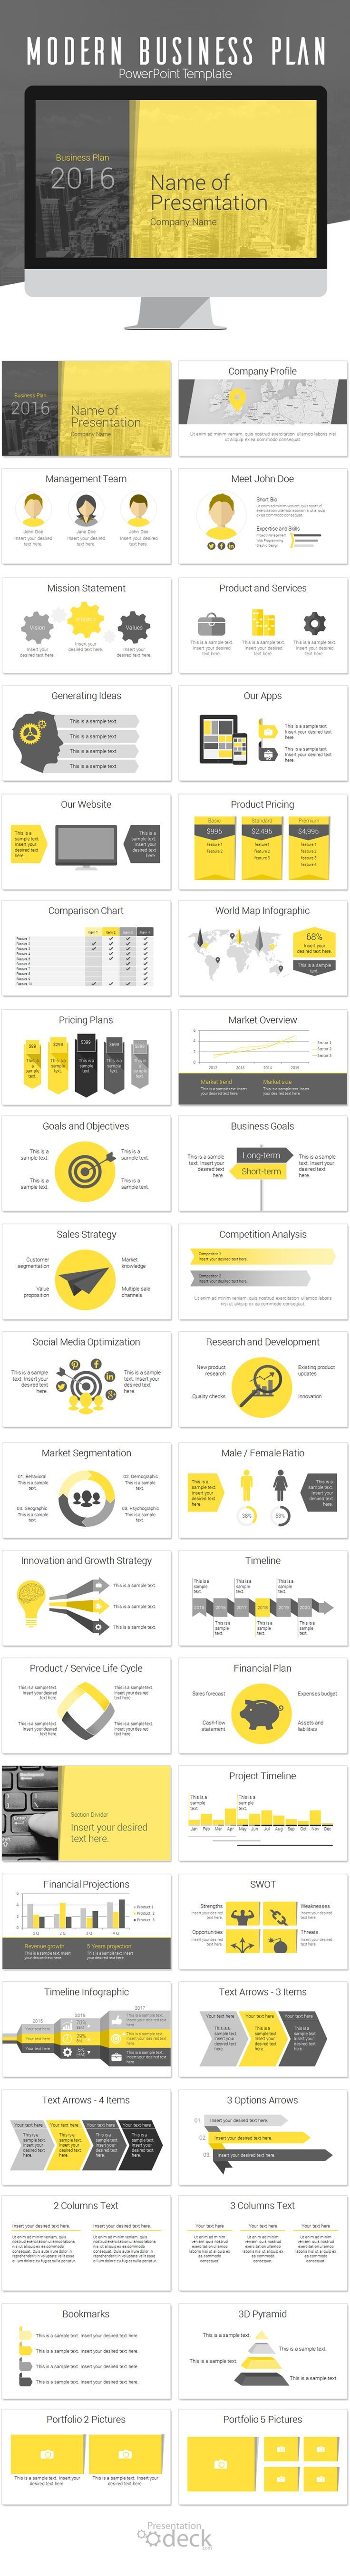 Modern Business Plan PowerPoint Template, this theme is perfect for annual reports, business plan, financial statements, etc. Your audience will appreciate the consistent look and feel and design. #powerpoint #business #powerpoint_template